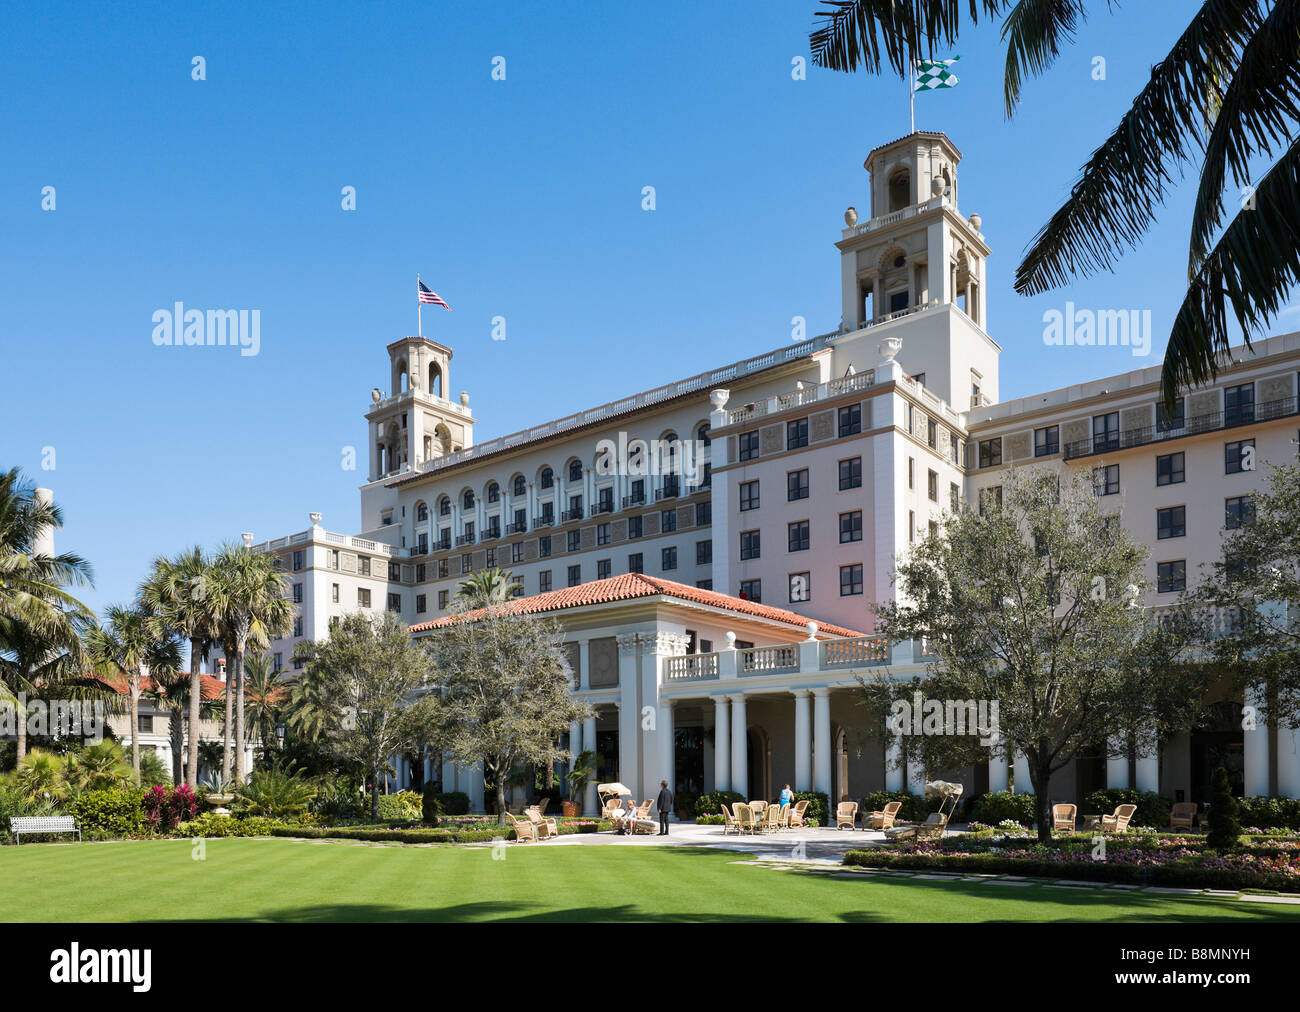 The famous Breakers Hotel in Palm Beach, Gold Coast, Florida, USA - Stock Image